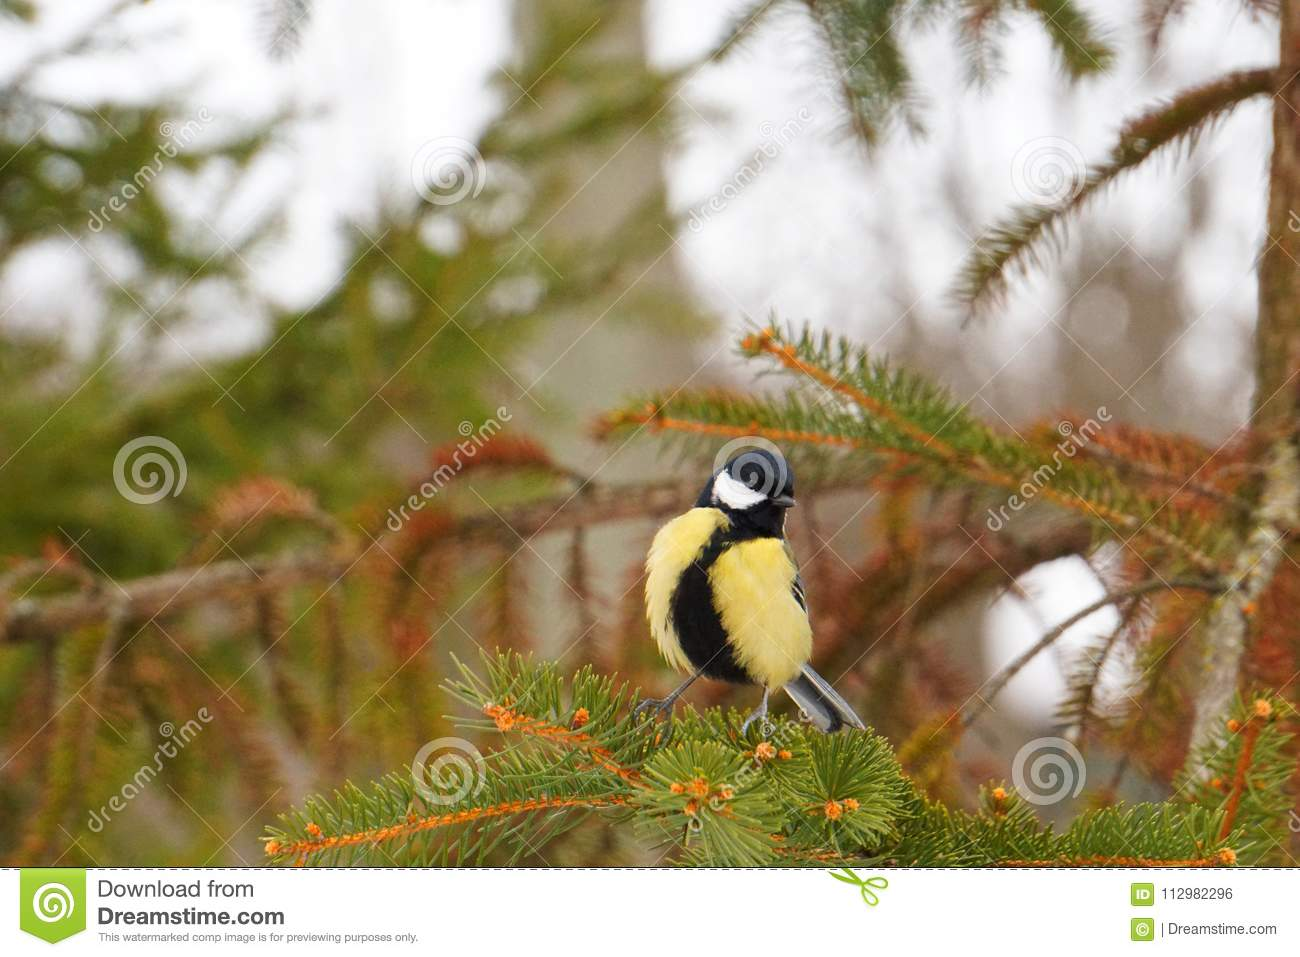 The yellow titmoustit is on the tree.